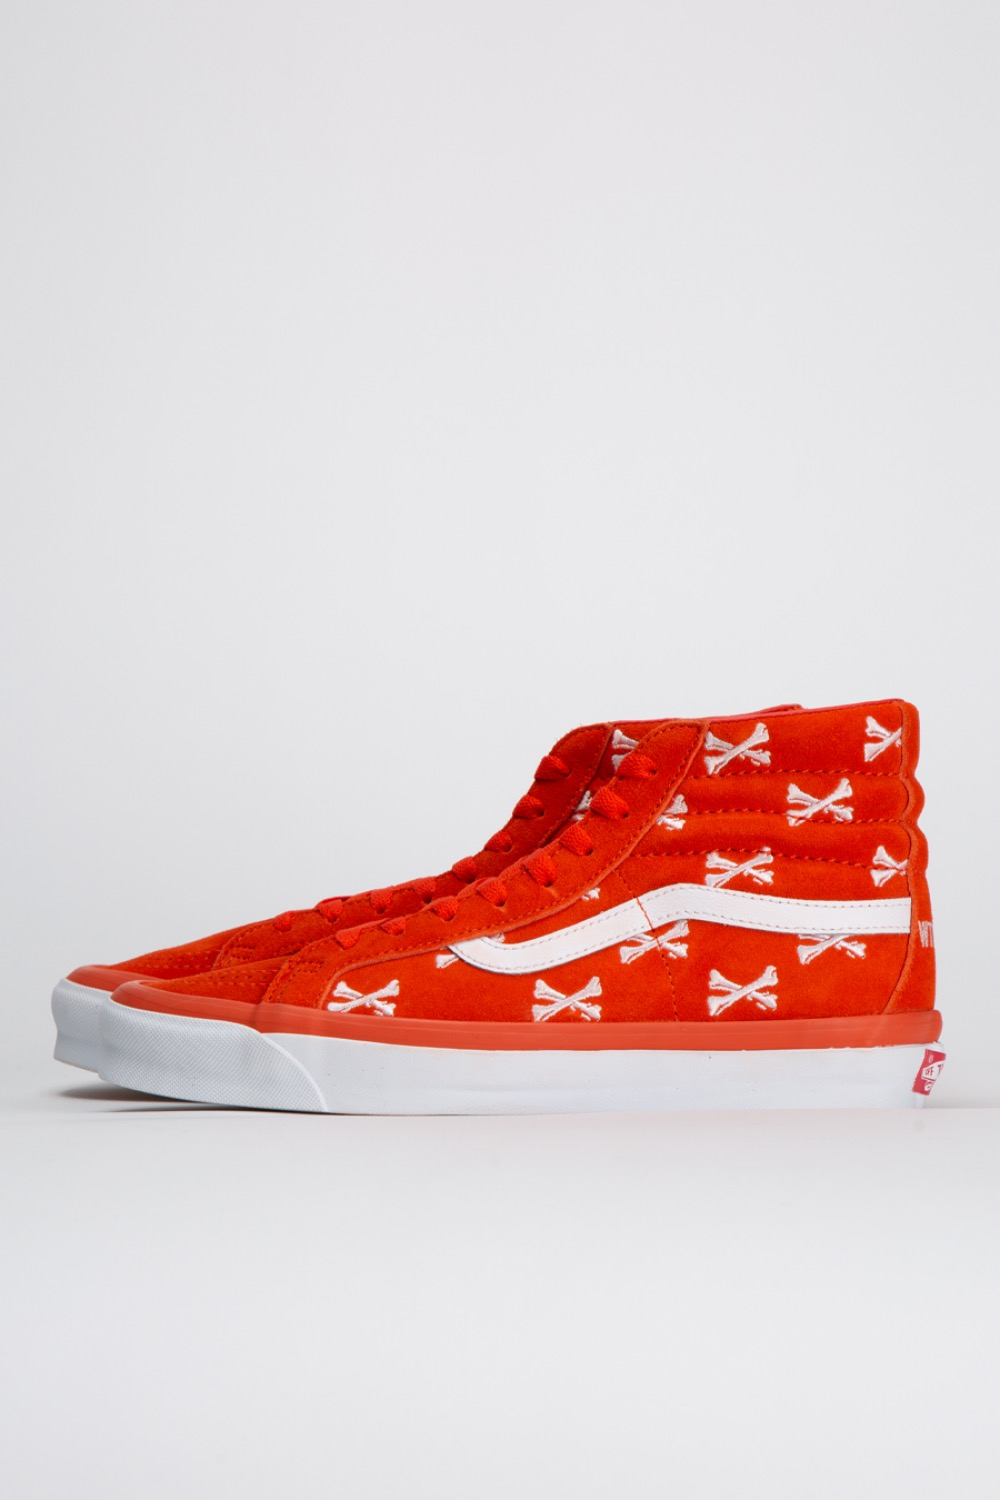 OG SK8-HI LX(WTAPS)BONES/ORANGE/WHITE